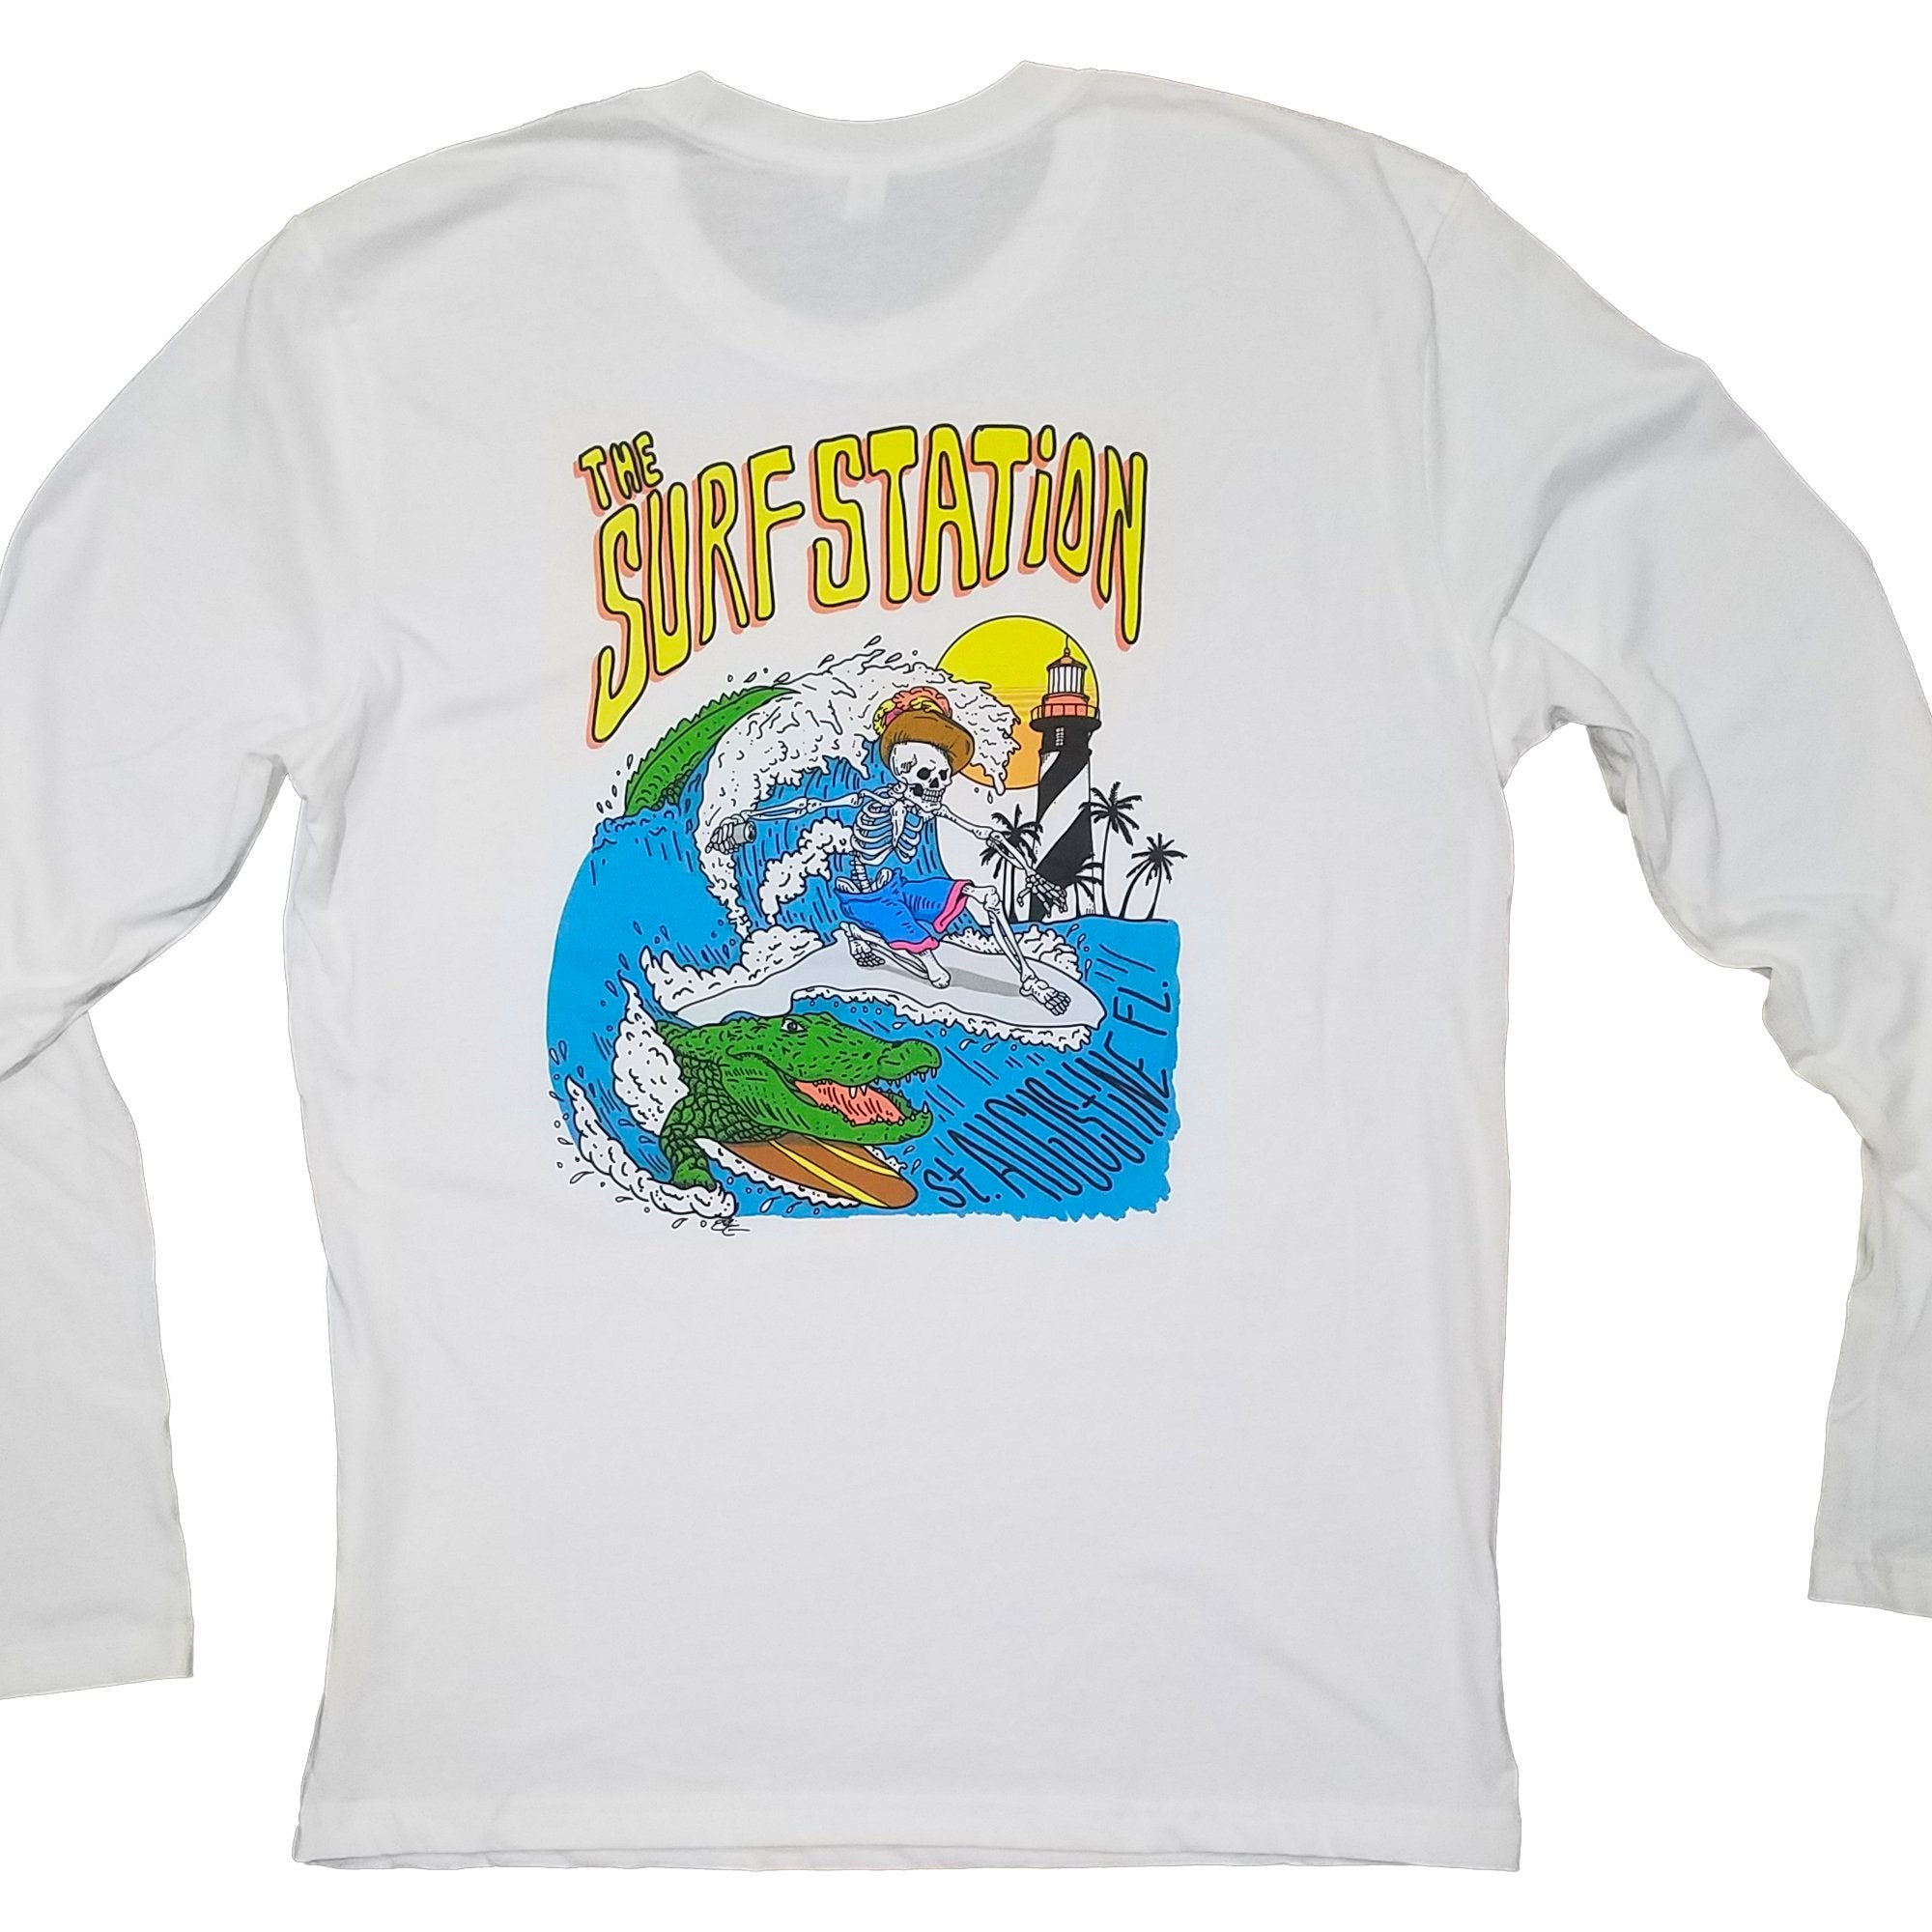 Surf Station Skeleton Gator Men's L/S T-Shirt